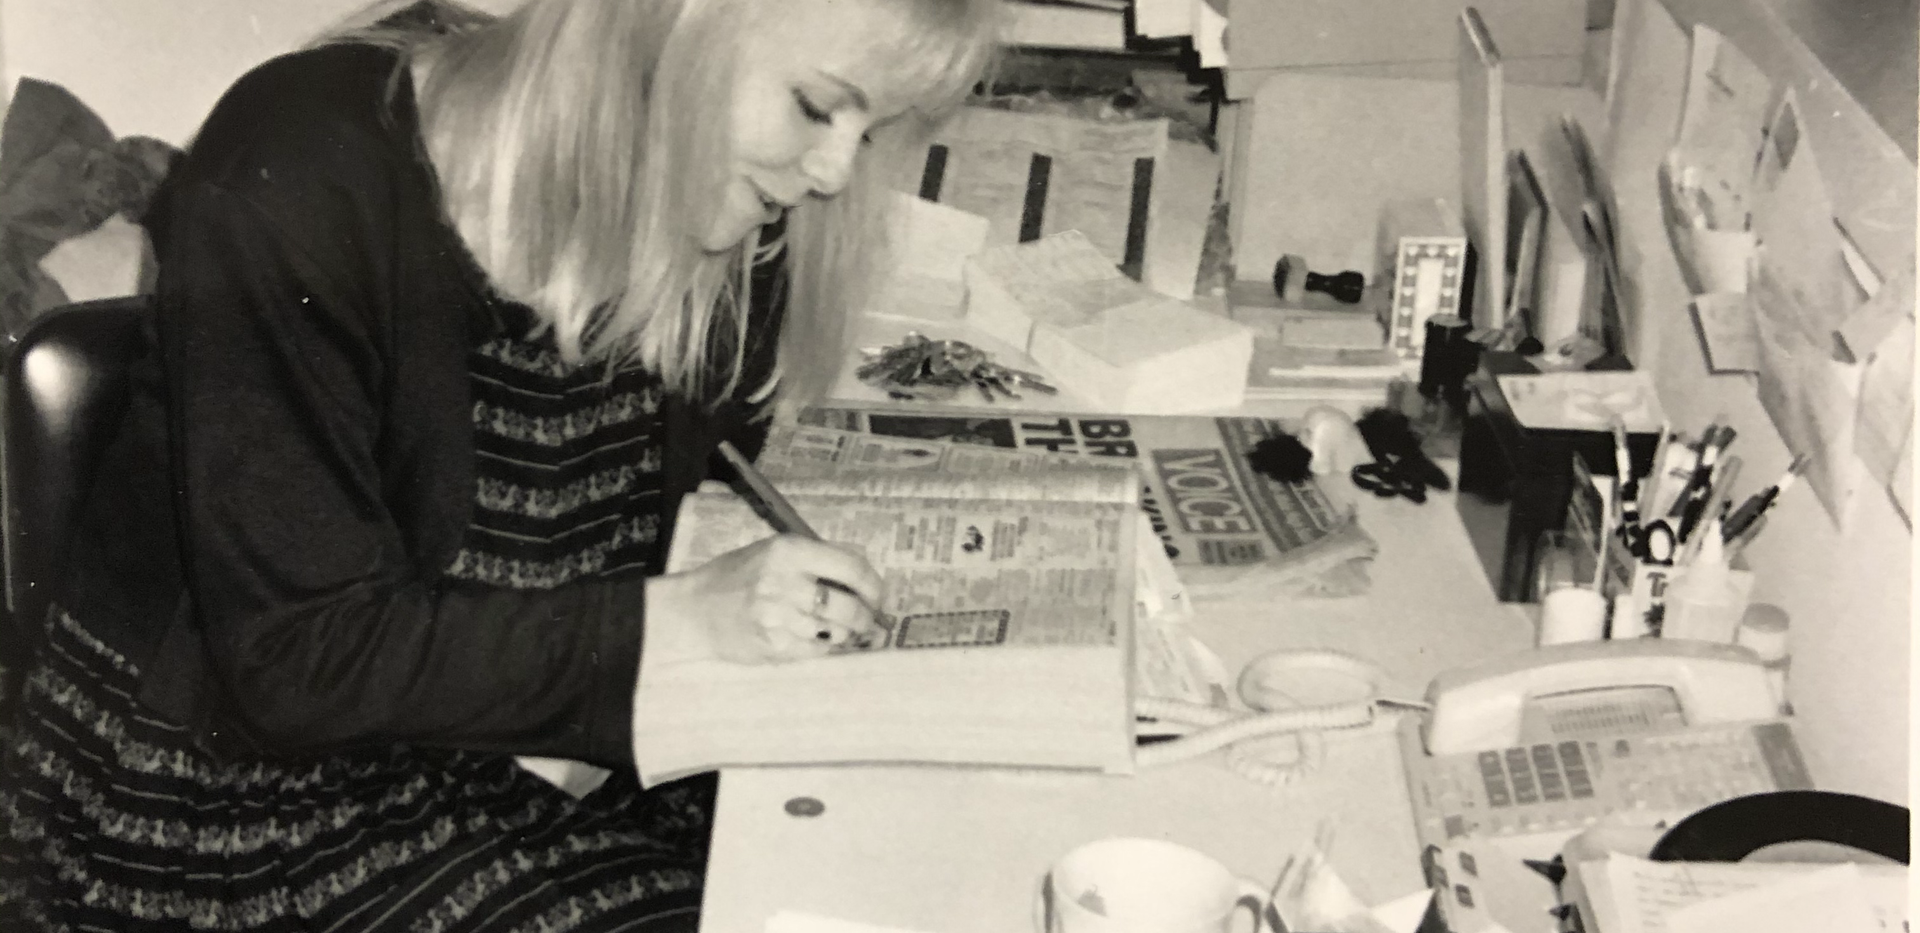 Lisa Ecklund-Flores at front desk 311 Church Street, early 1990s